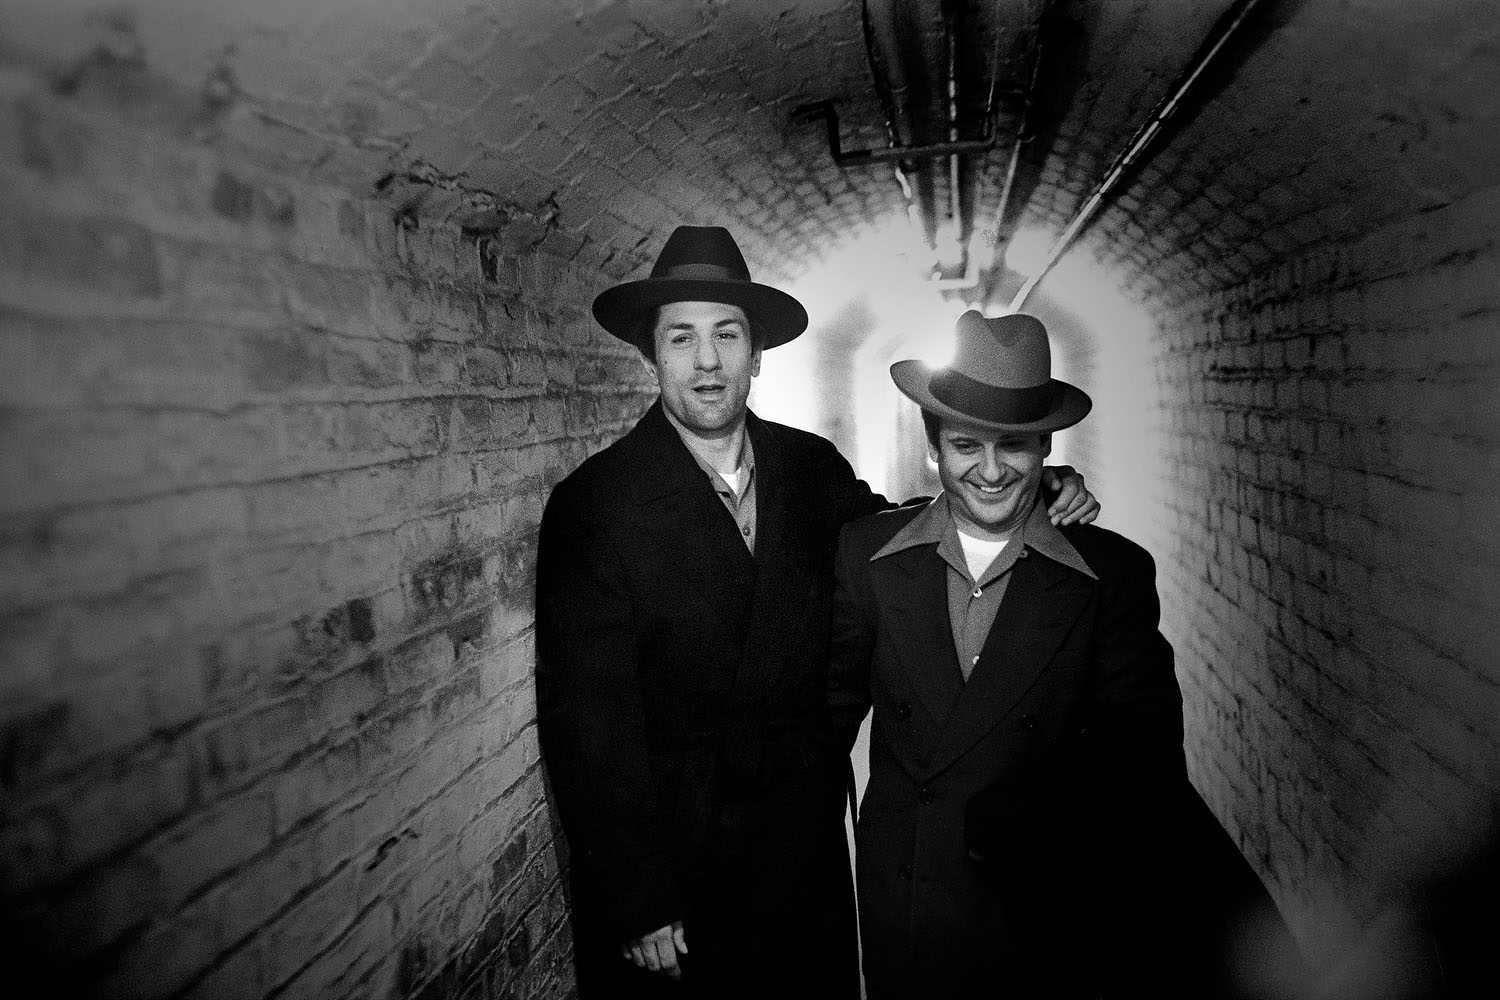 De Niro with Pesci in a tunnel at the 14th Regiment Armory.